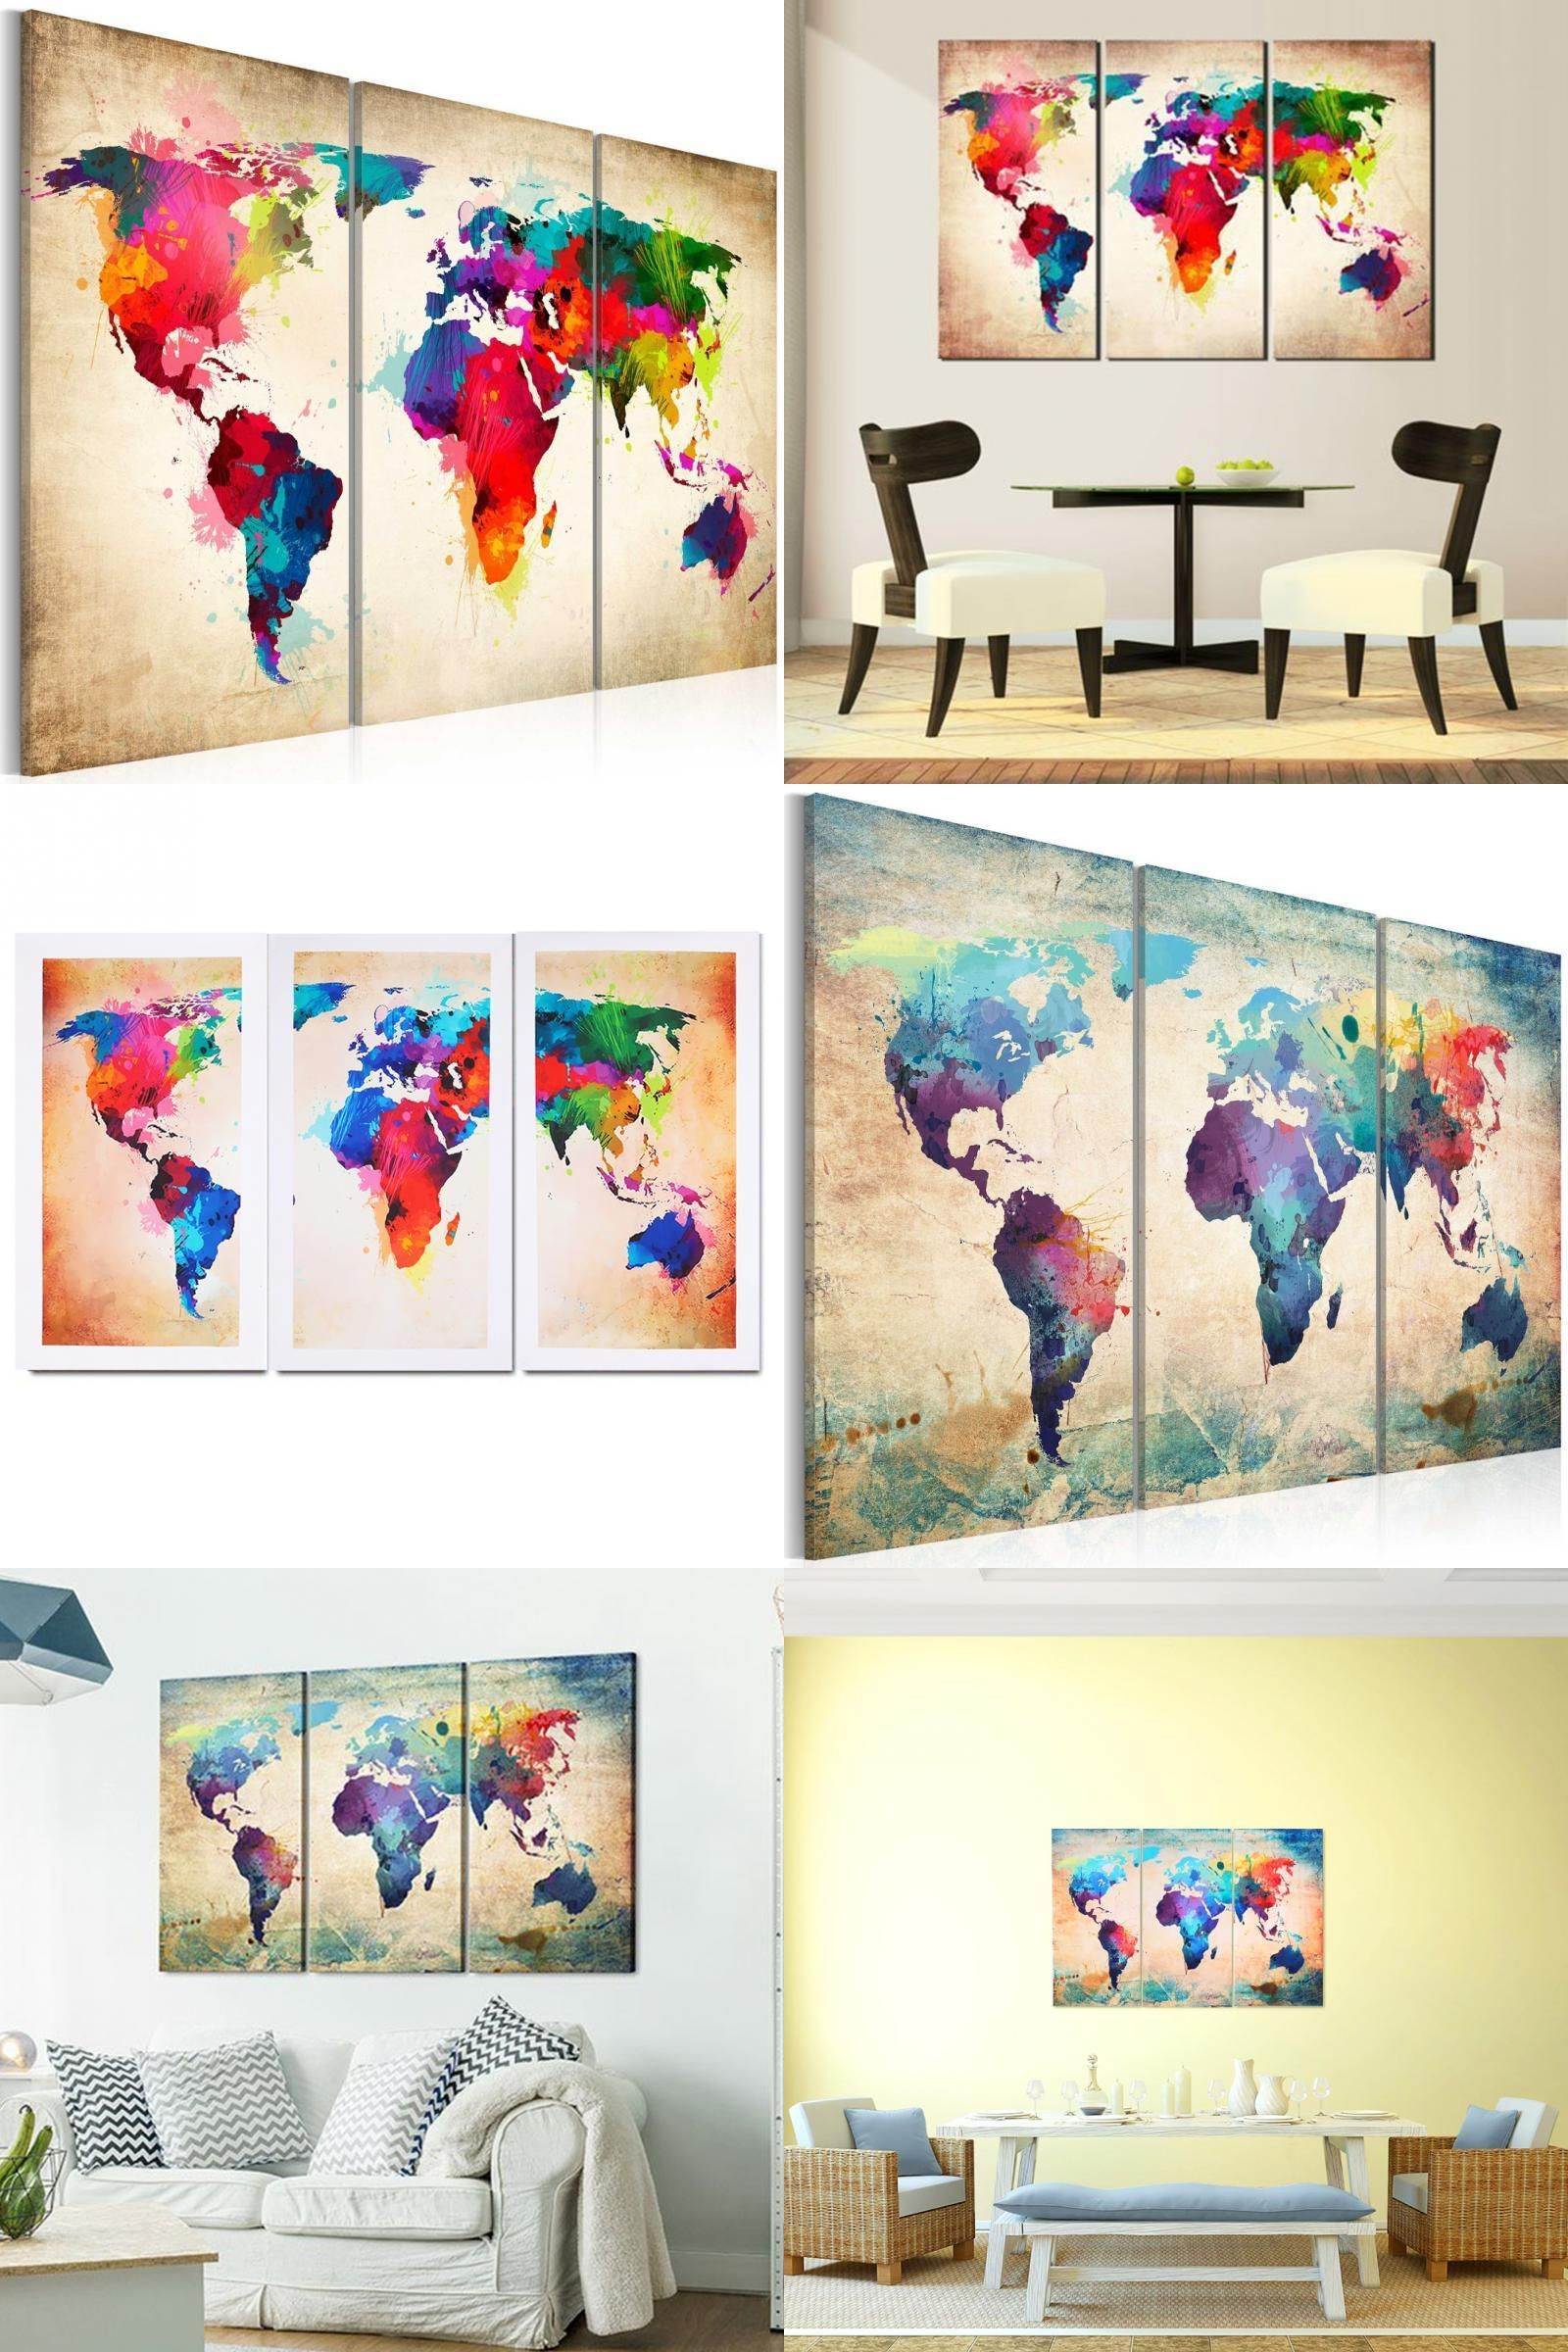 Visit to buy vivid oil painting world map environmental visit to buy vivid oil painting world map environmental professional decorative painting canvas triple world map wall sticker home decoration gumiabroncs Images